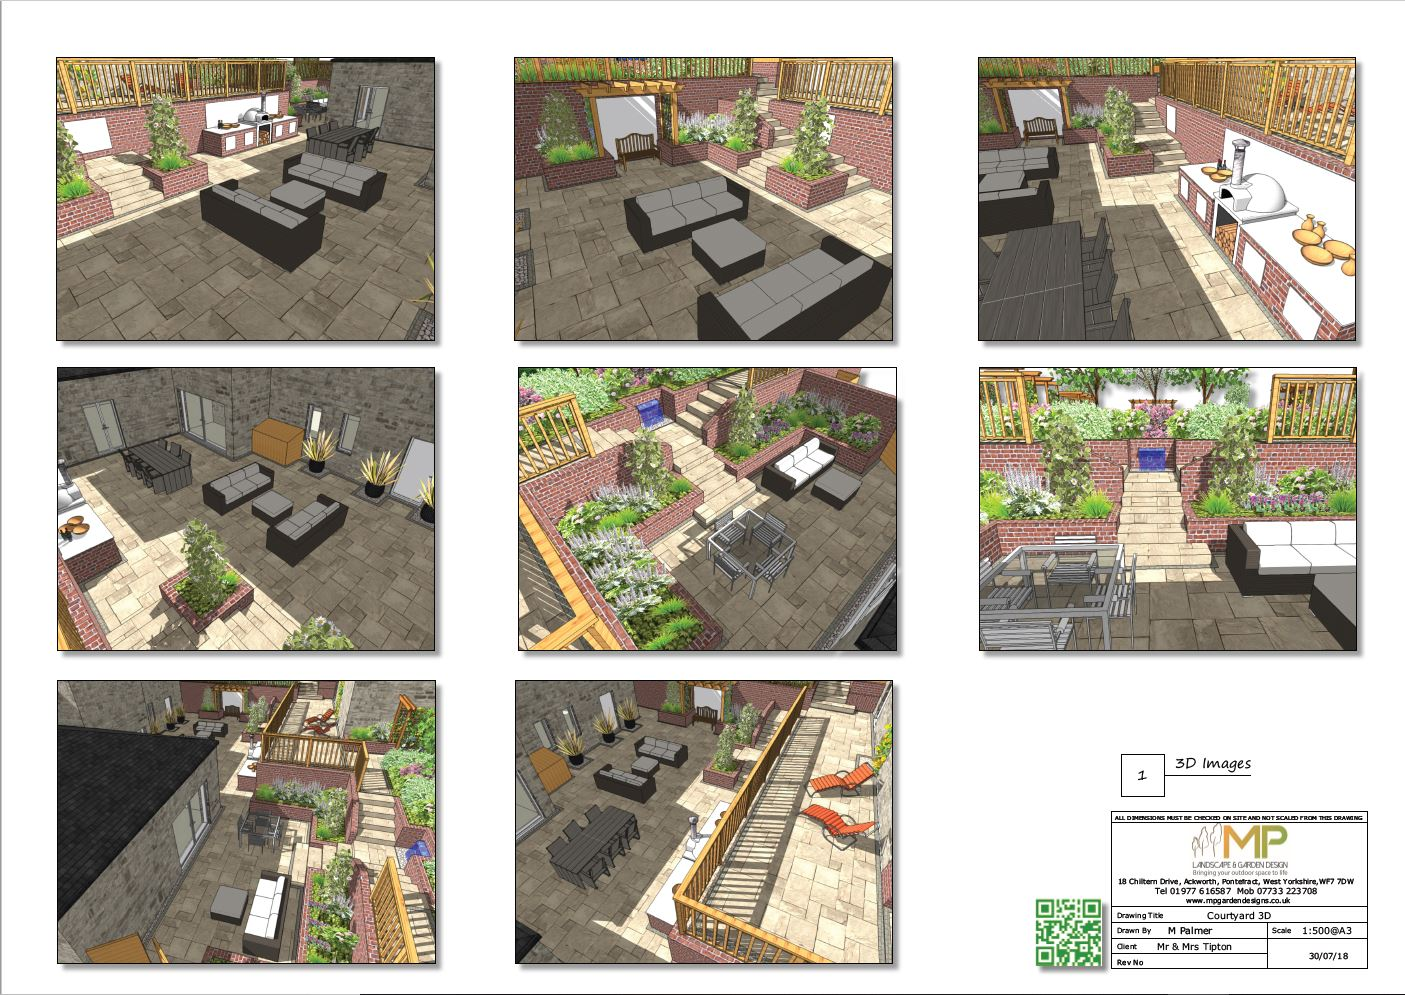 Courtyard layout plans 3D, for a property in Castleford.